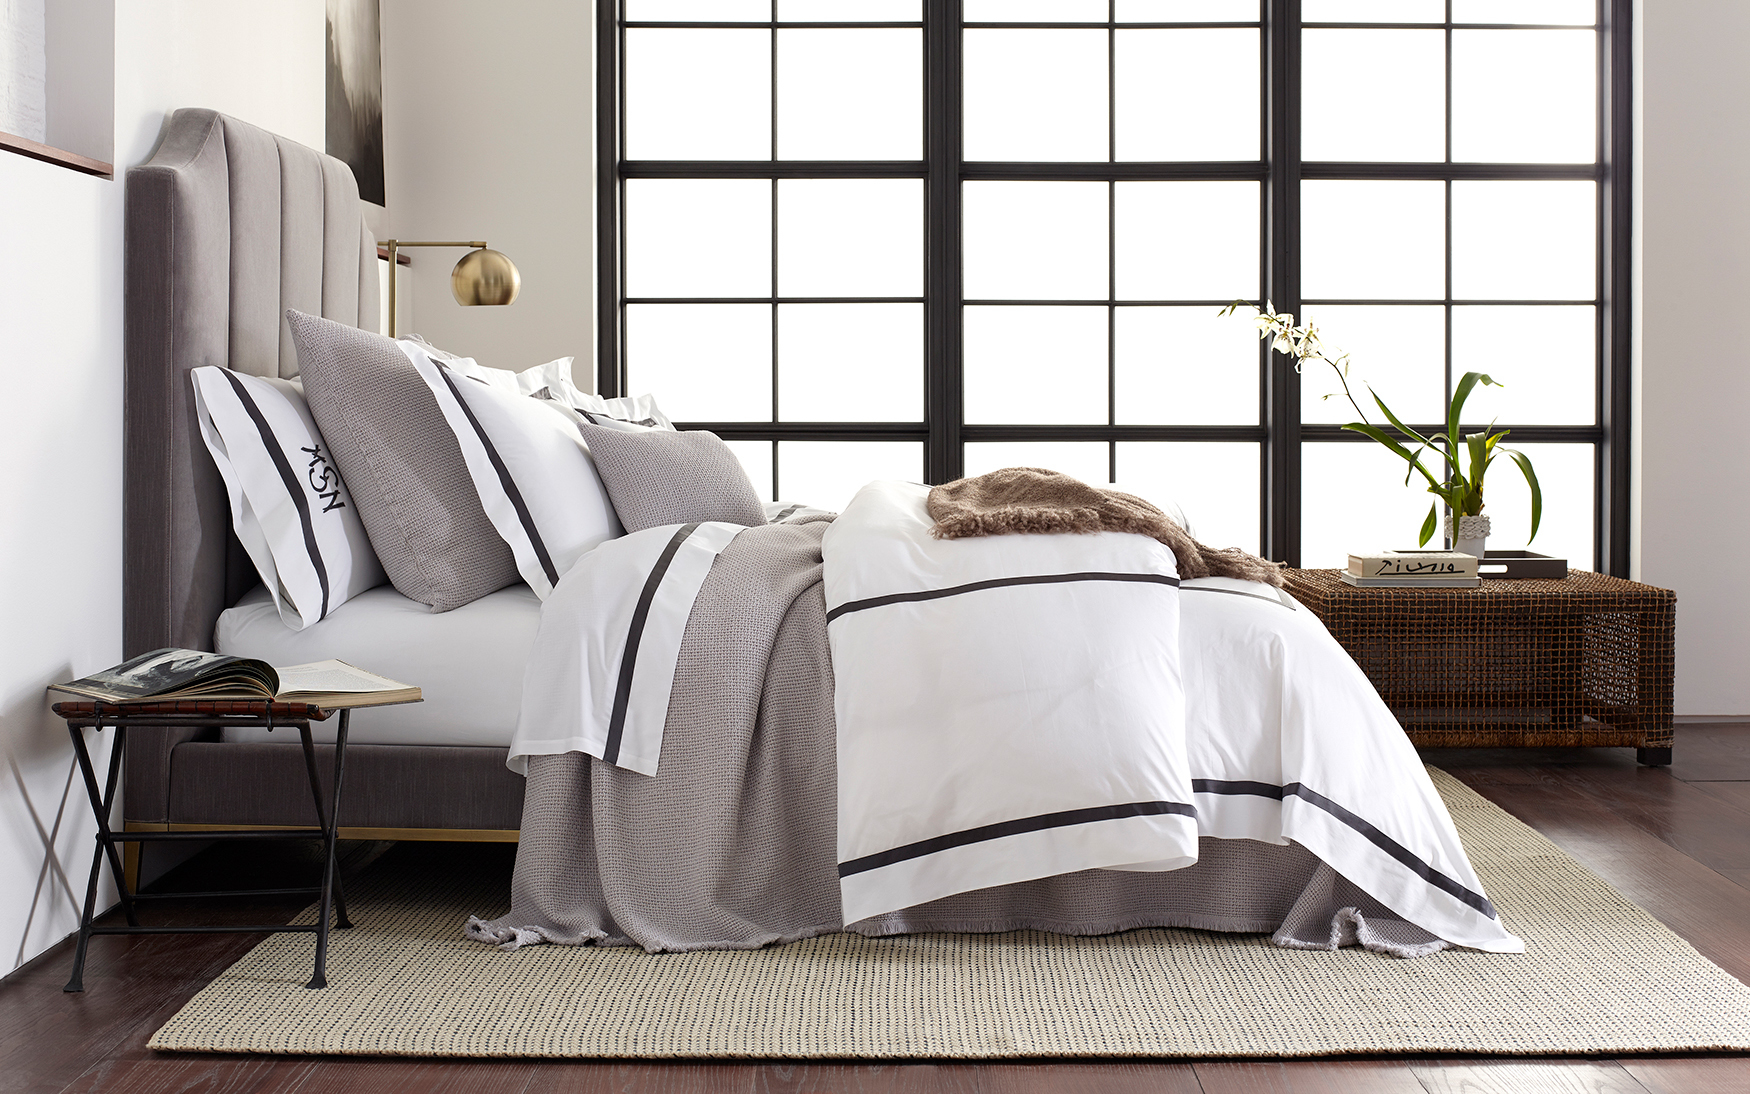 Lowell 600 Thread Count FULL Silver QUEEN Flat Sheet White MATOUK Bedding